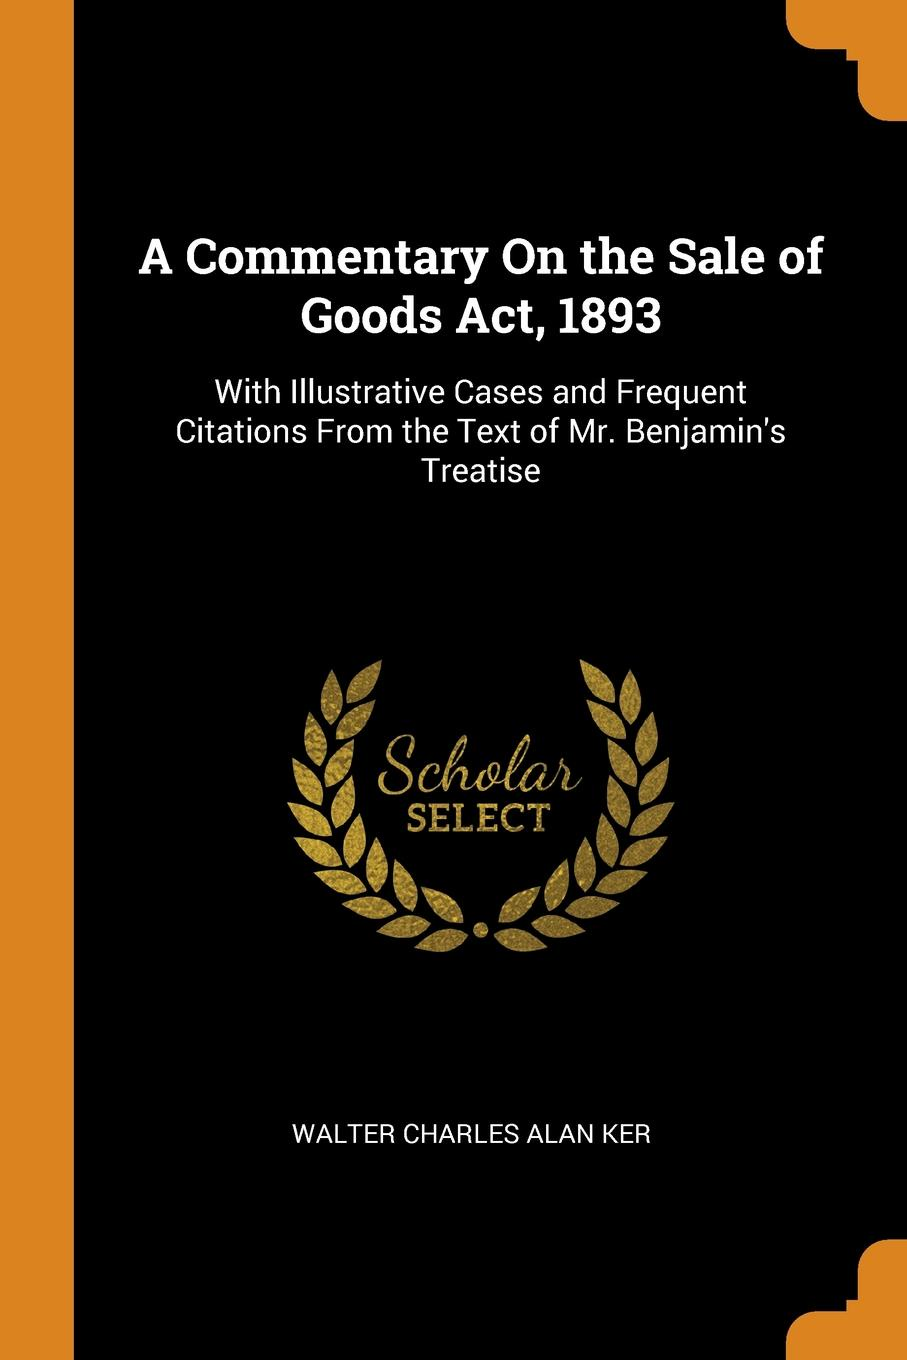 A Commentary On the Sale of Goods Act, 1893. With Illustrative Cases and Frequent Citations From the Text of Mr. Benjamin.s Treatise This work has been selected by scholars as being culturally important...